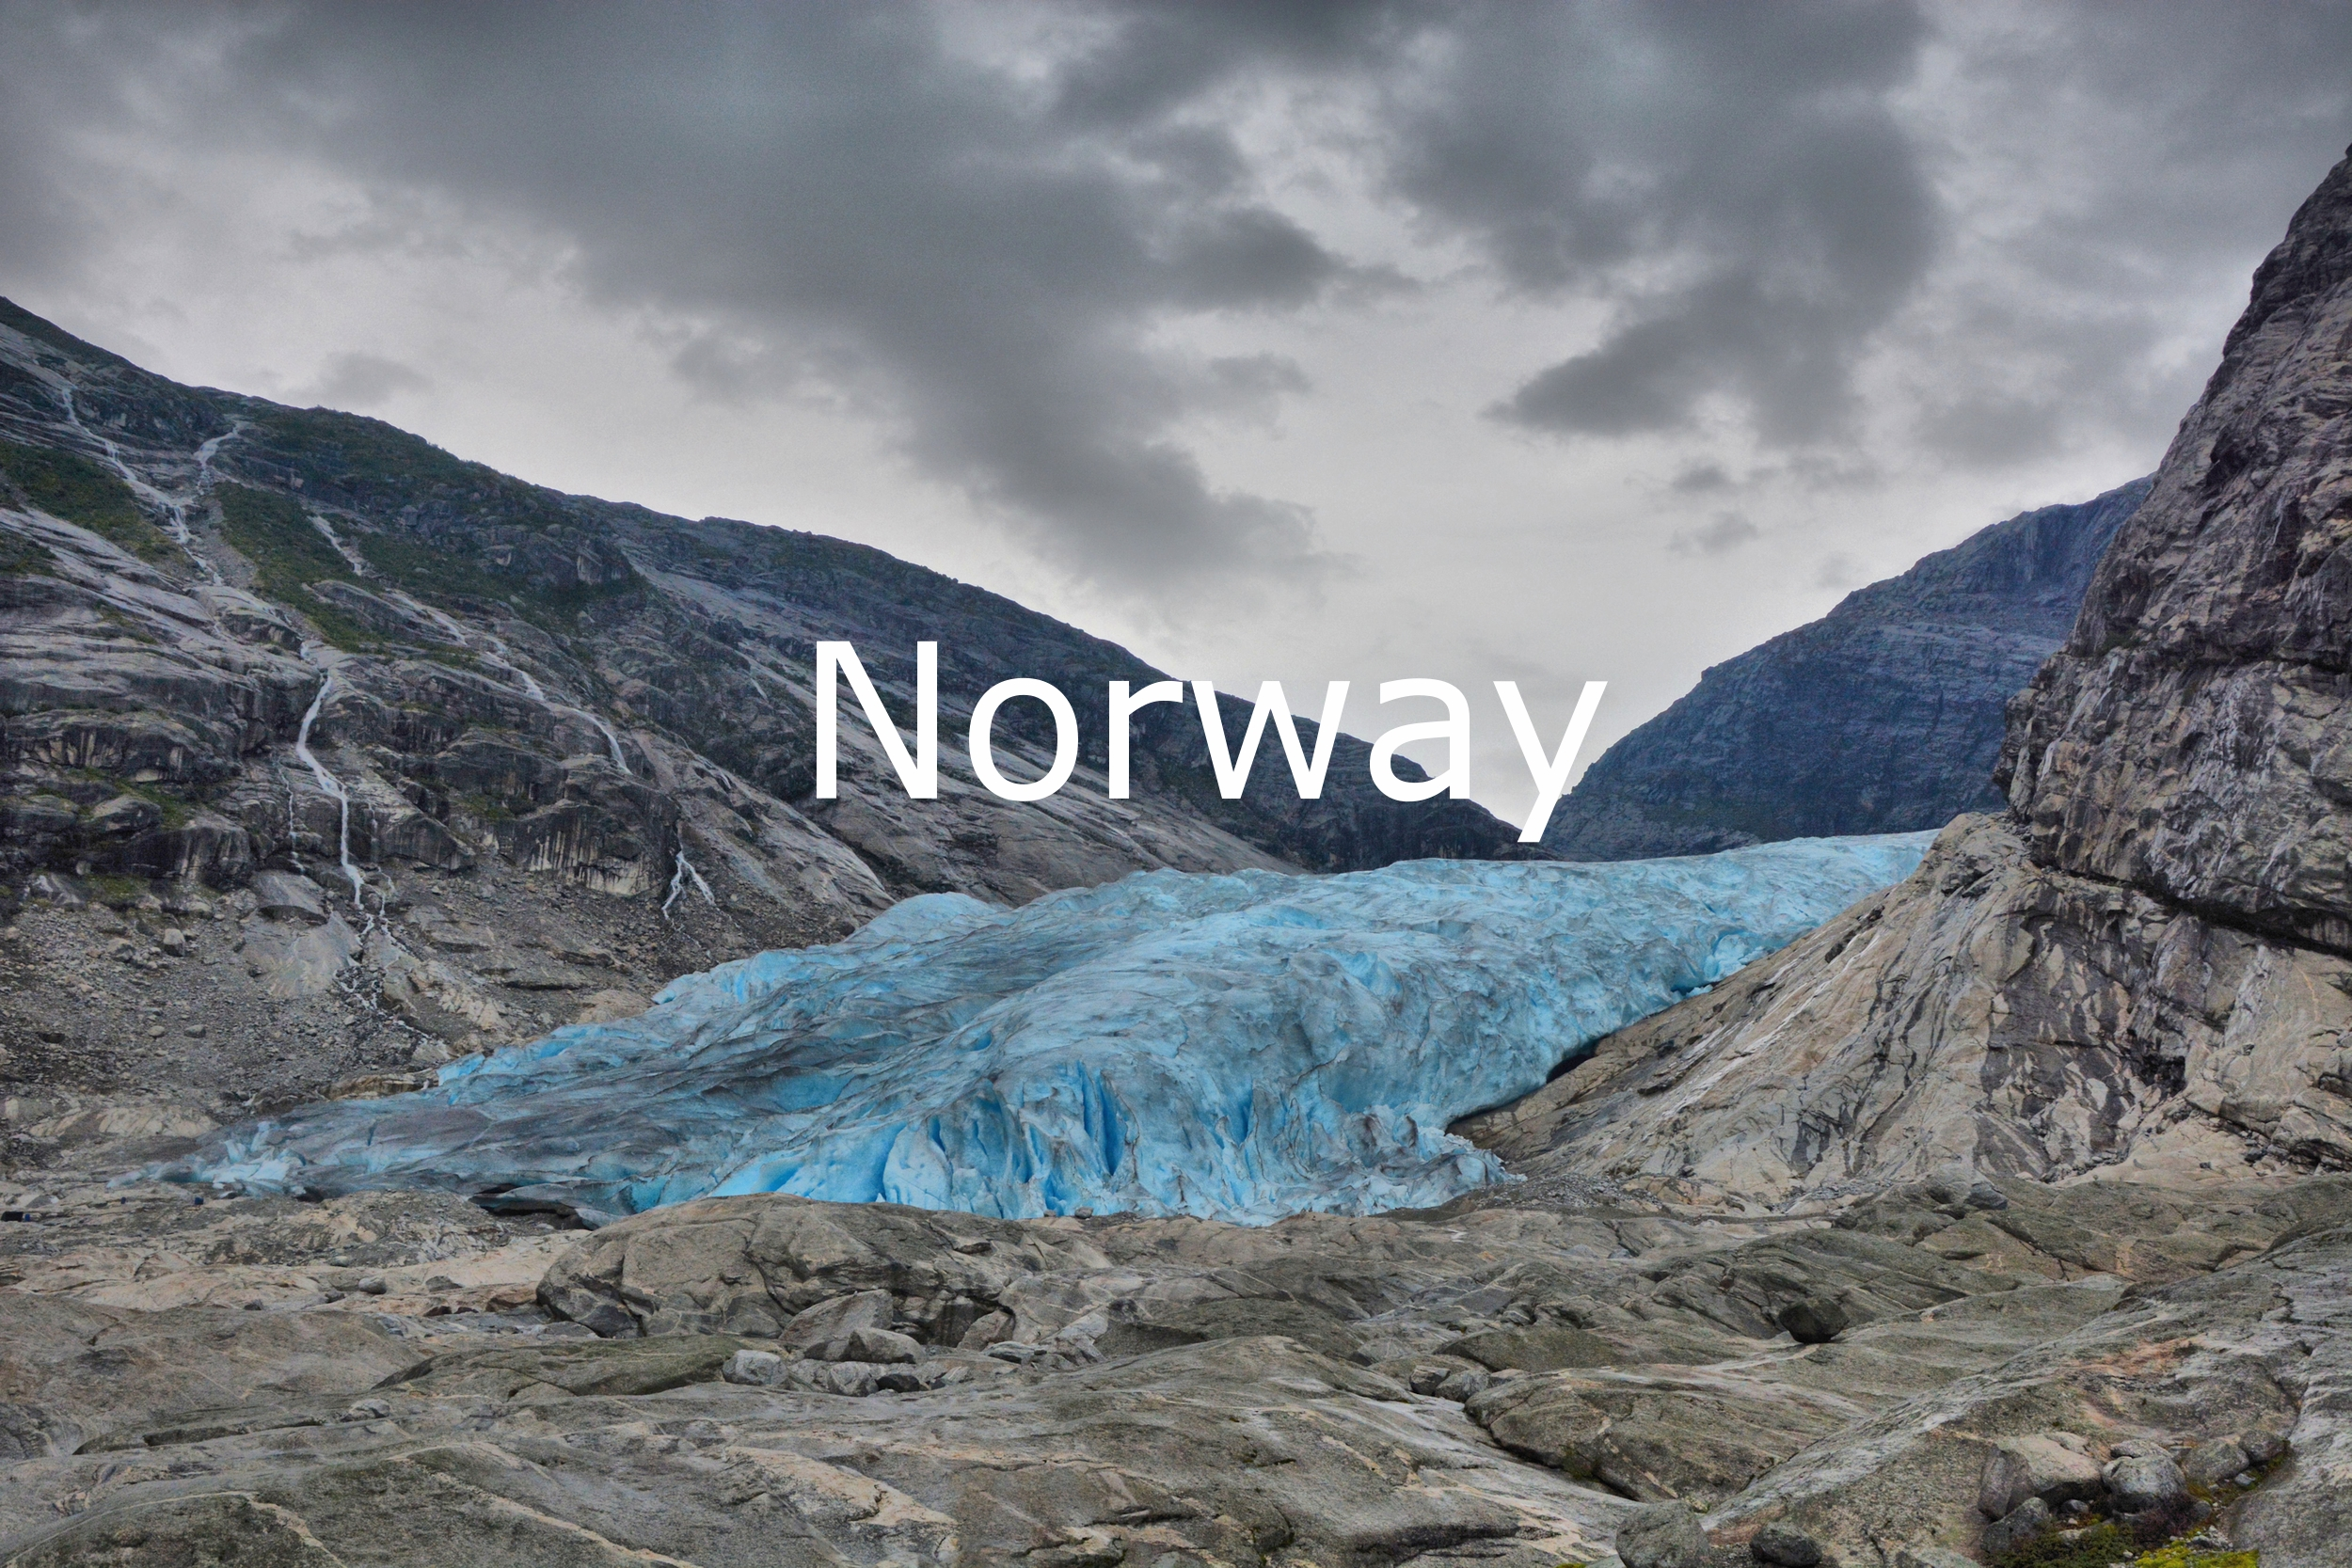 Photographs of Norway